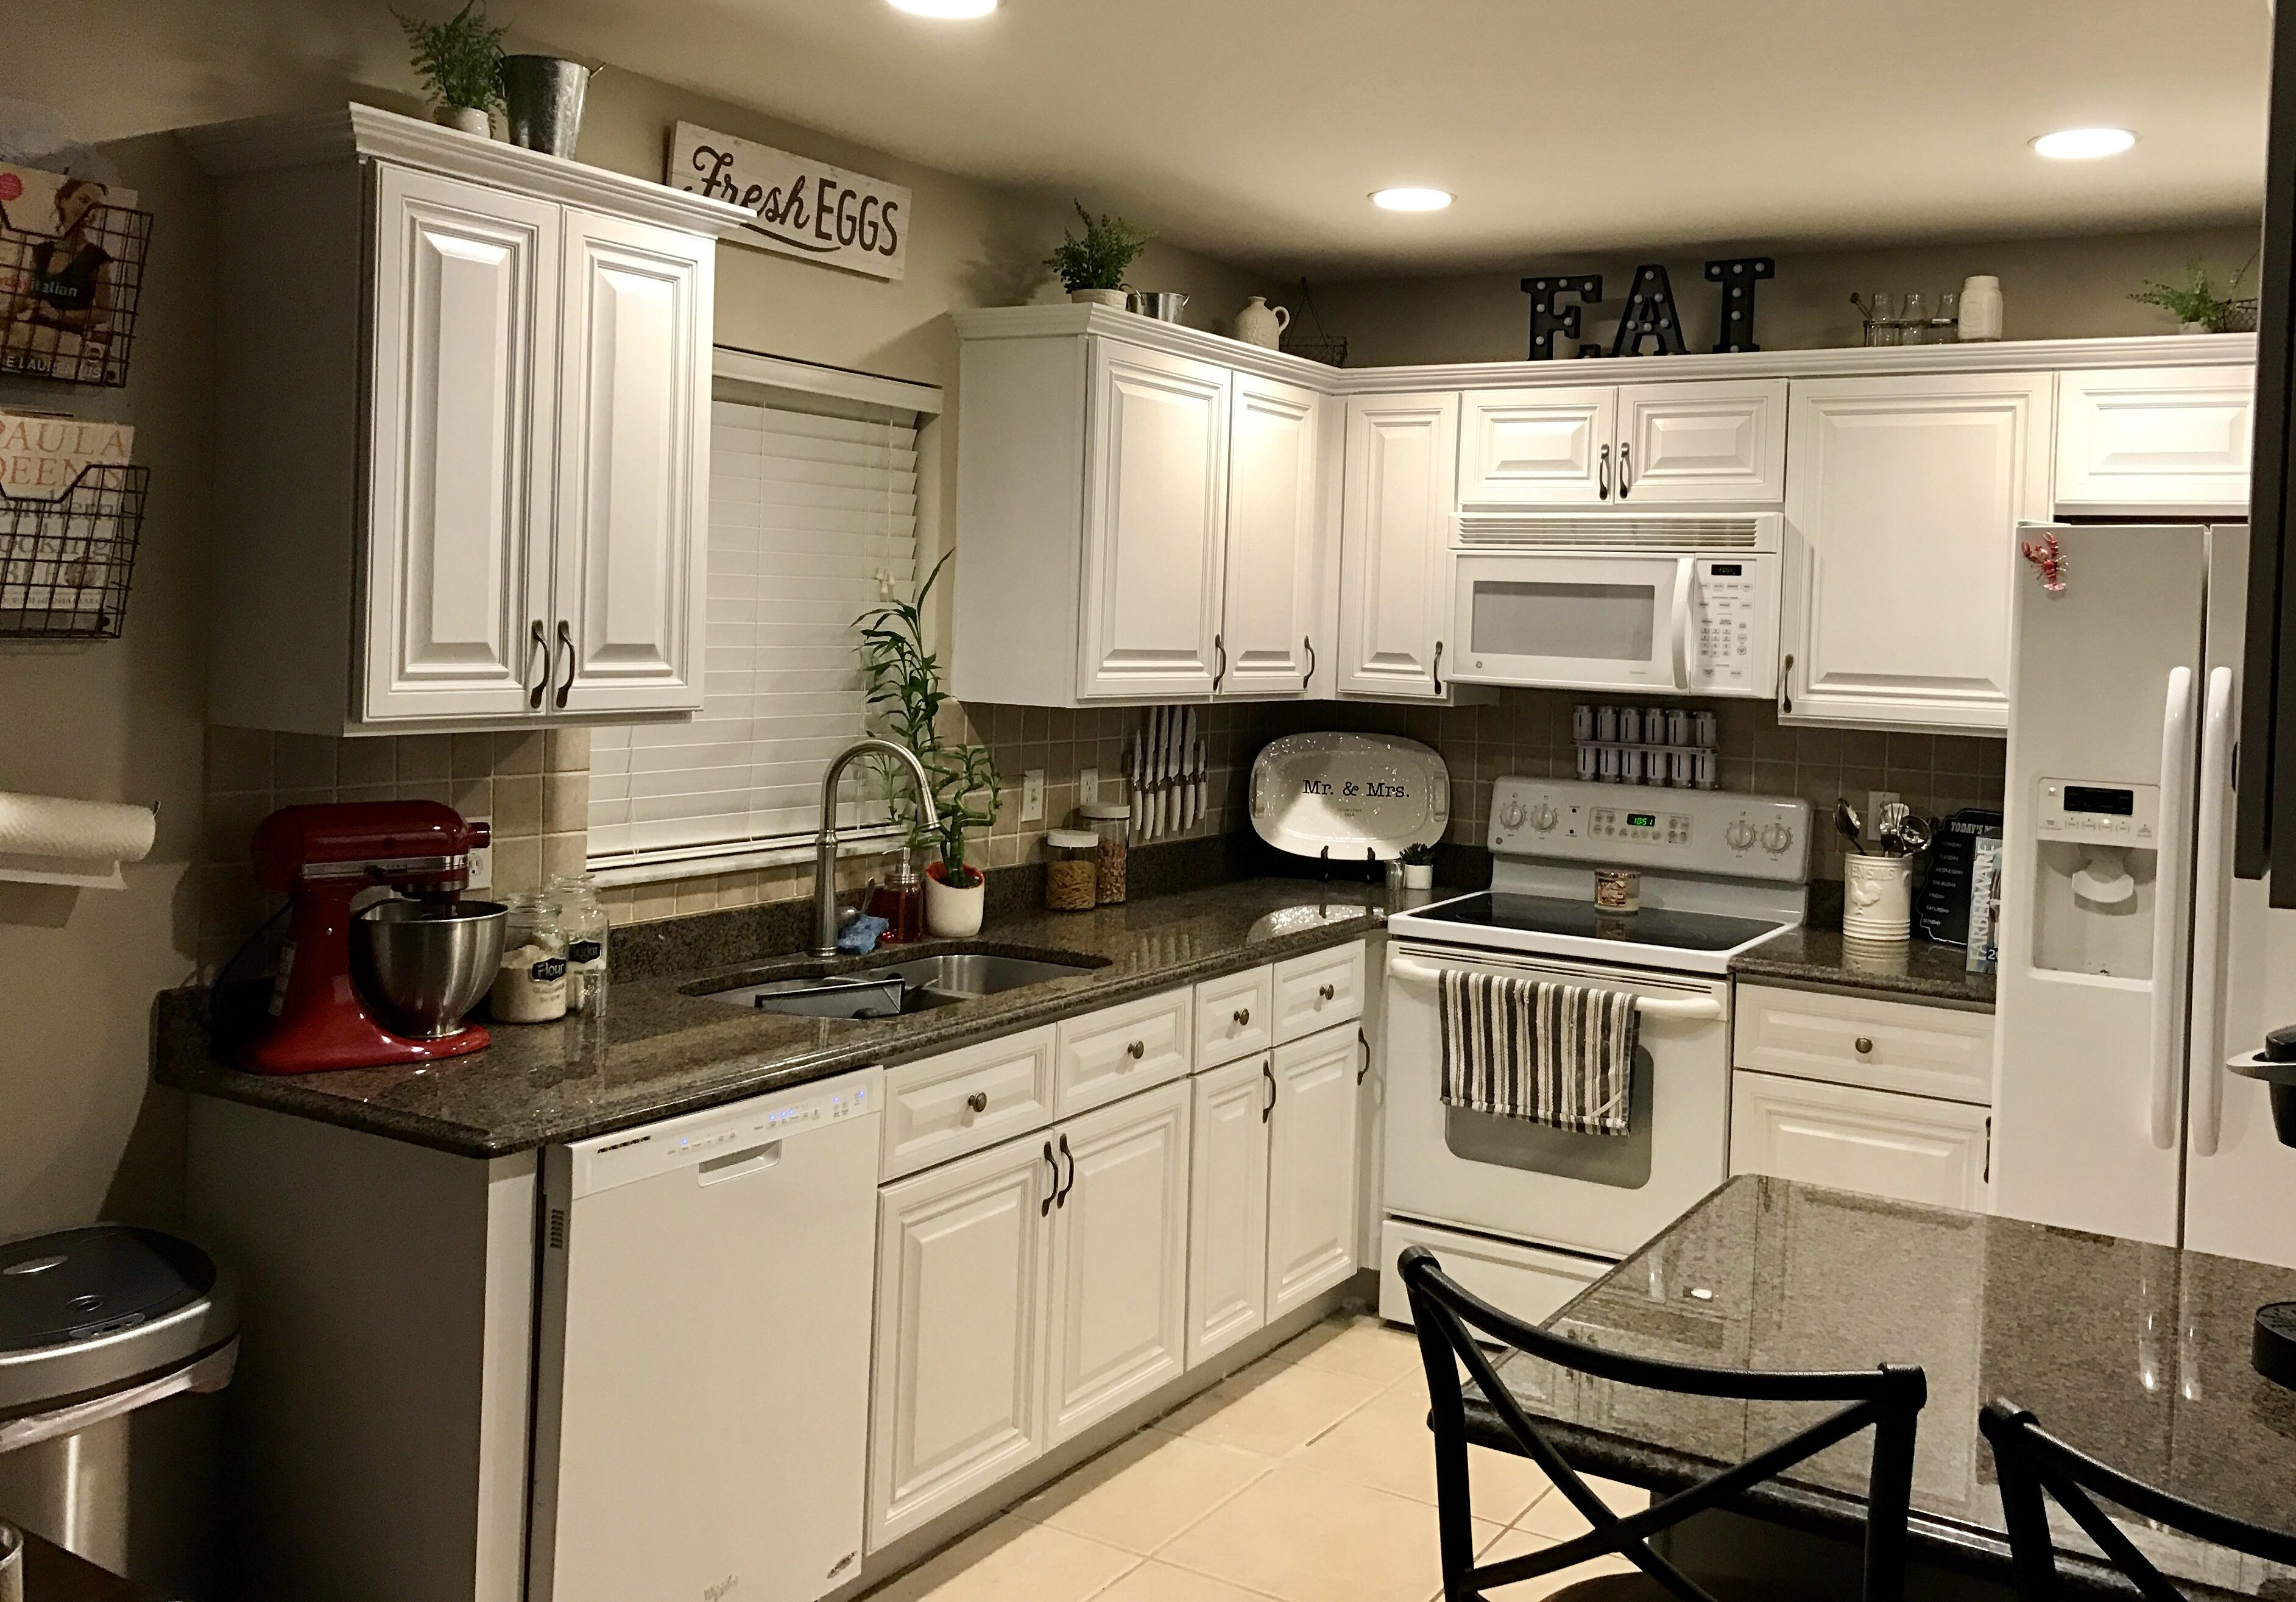 learn the best diy way to paint kitchen cabinets with on best paint for kitchen cabinets diy id=18097